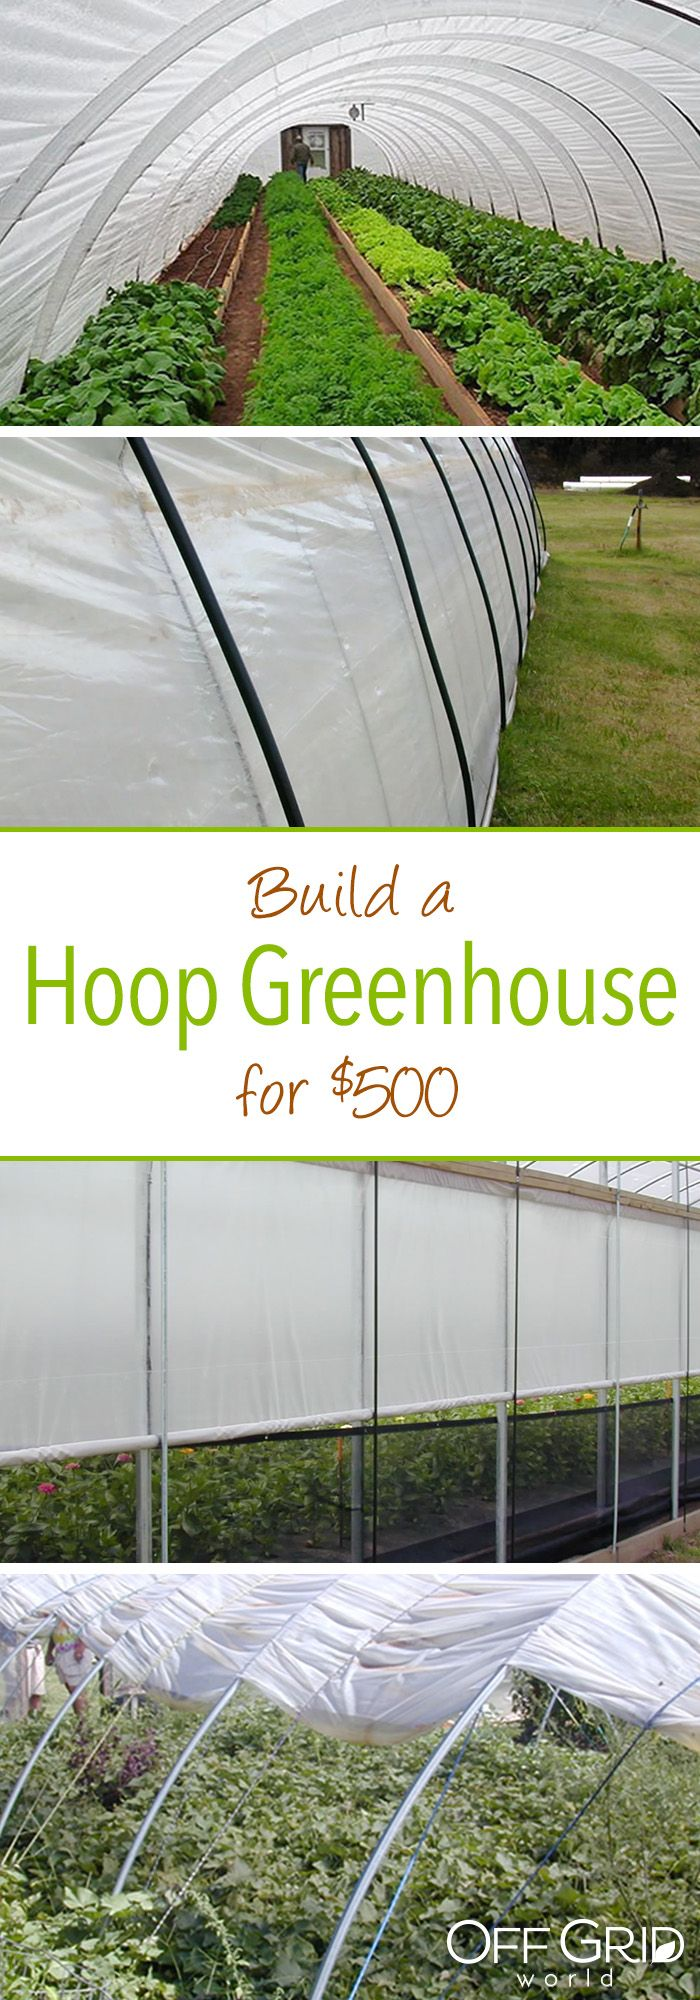 How to build a hoop greenhouse for $500